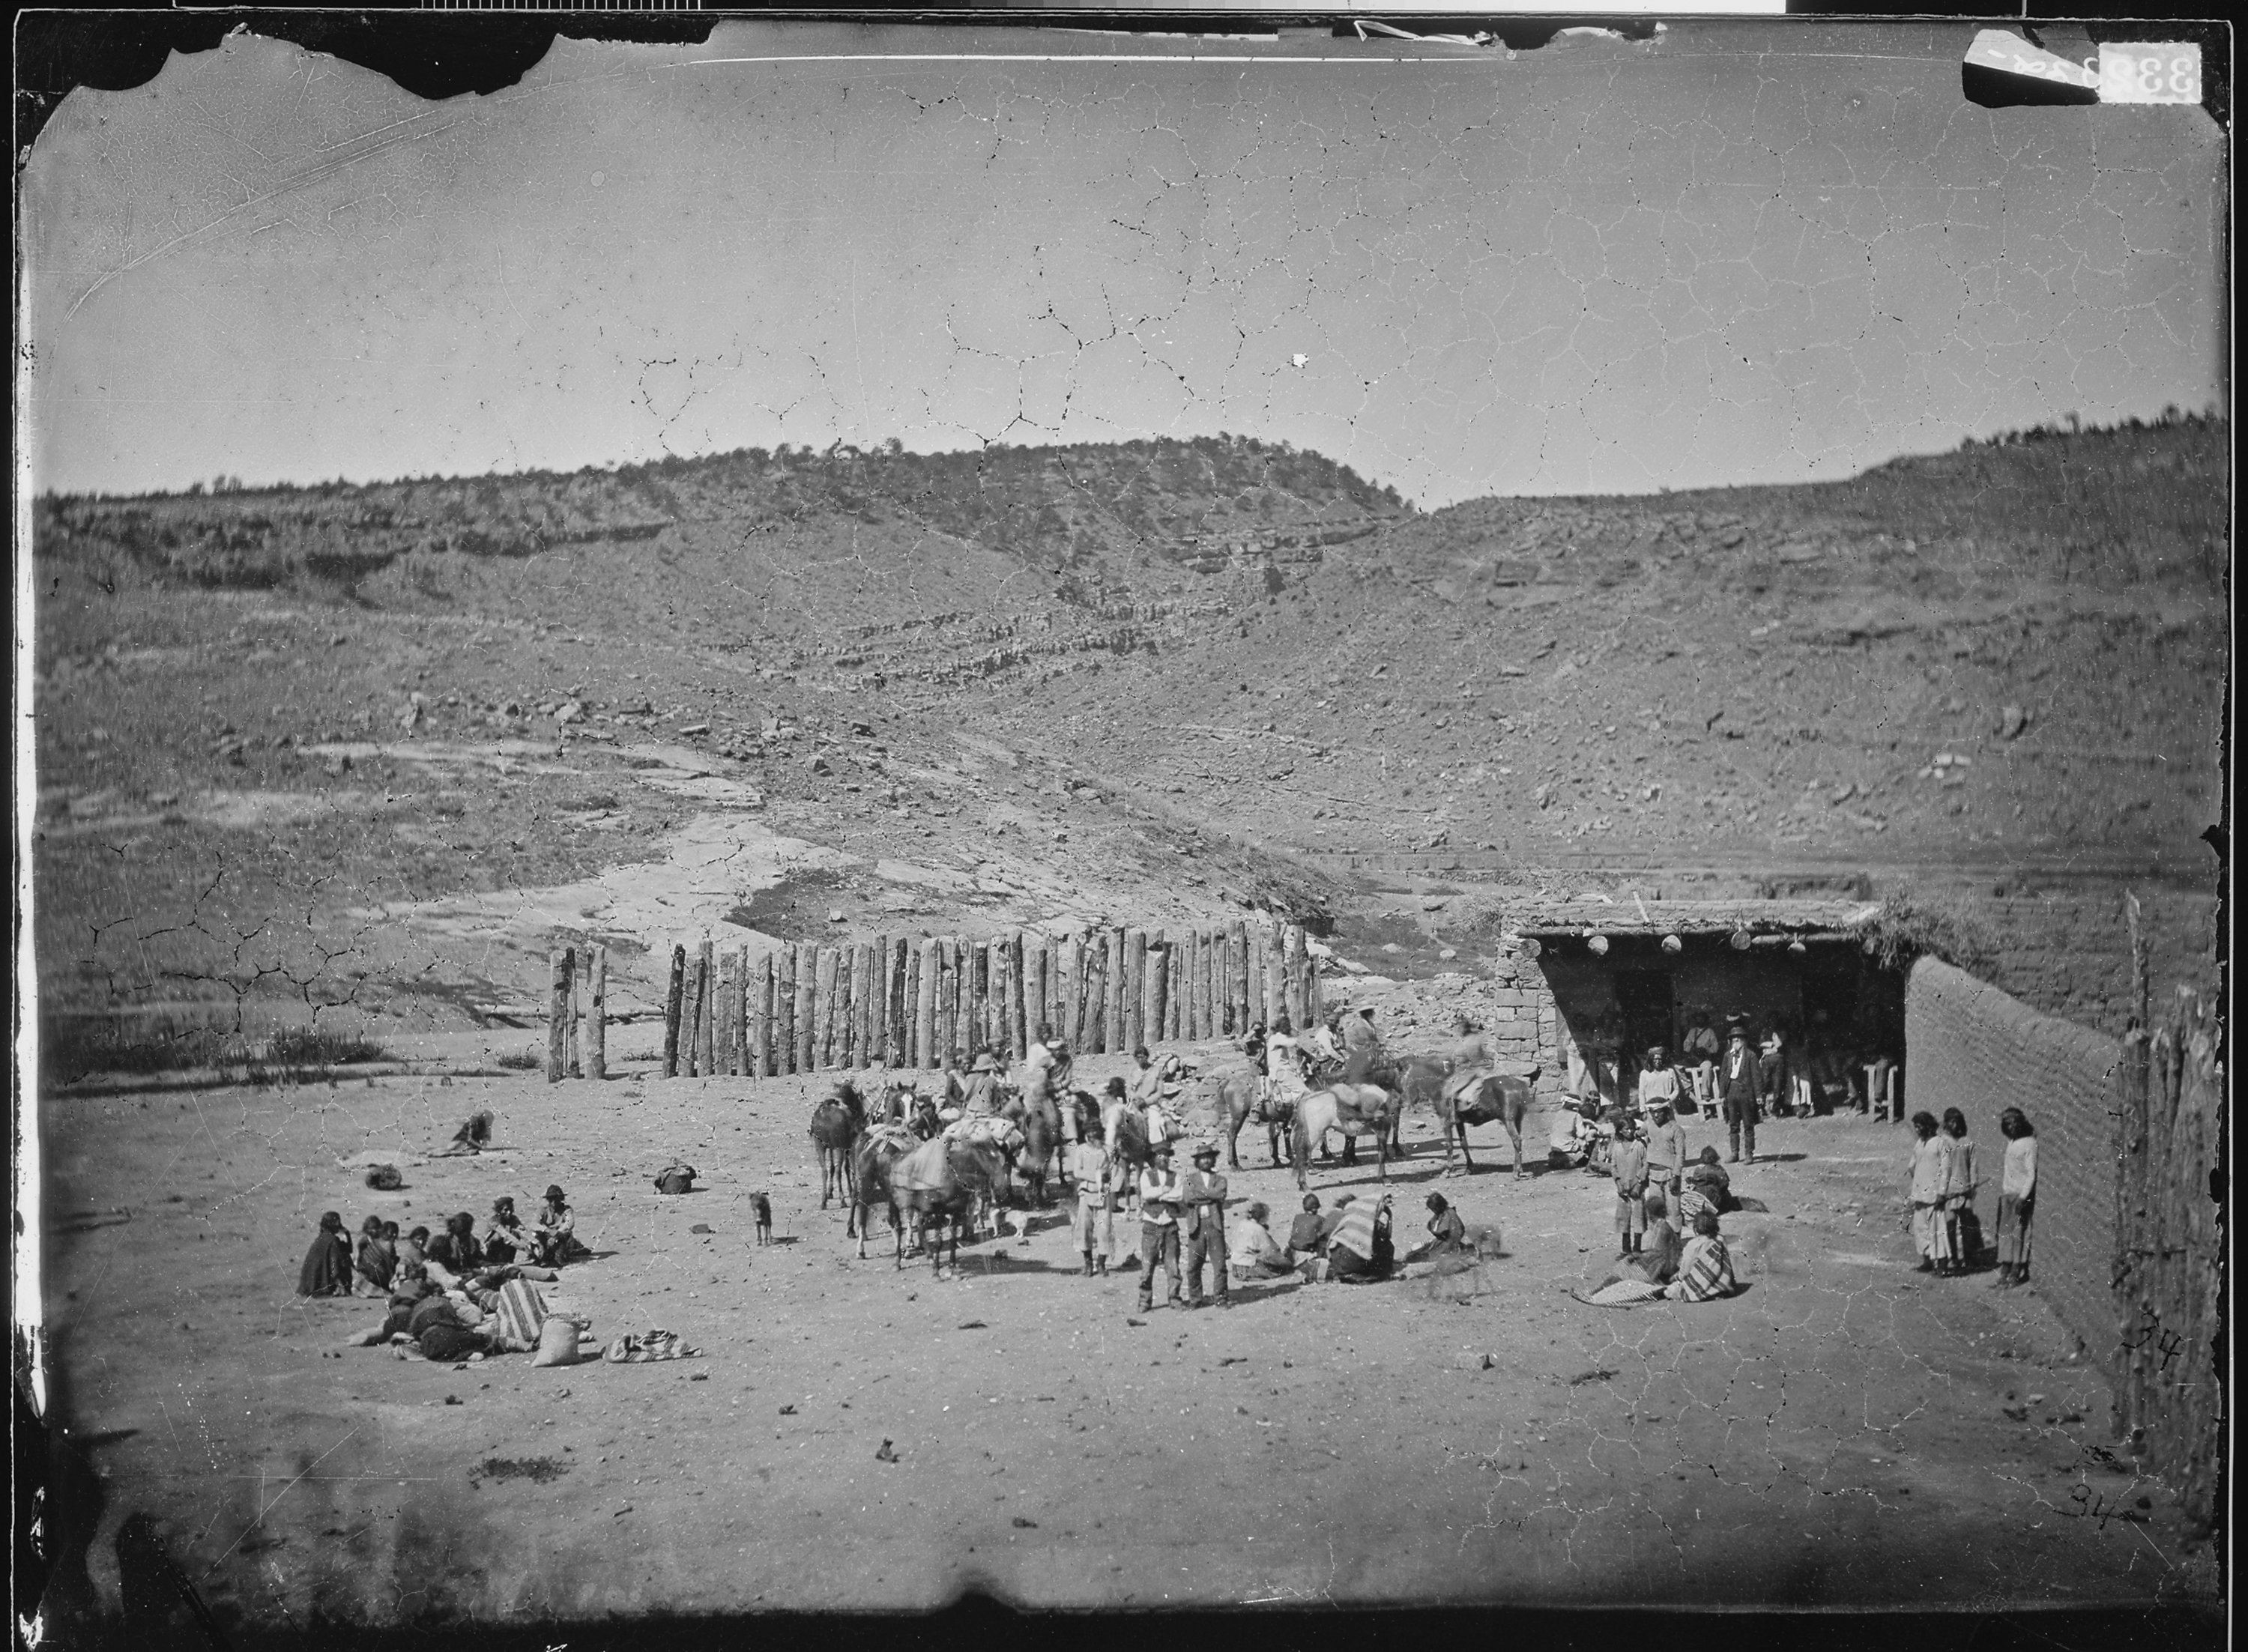 https://upload.wikimedia.org/wikipedia/commons/a/a2/NAVAJO_INDIANS_AT_FORT_DEFIANCE,_ARIZONA_-_NARA_-_524283.jpg